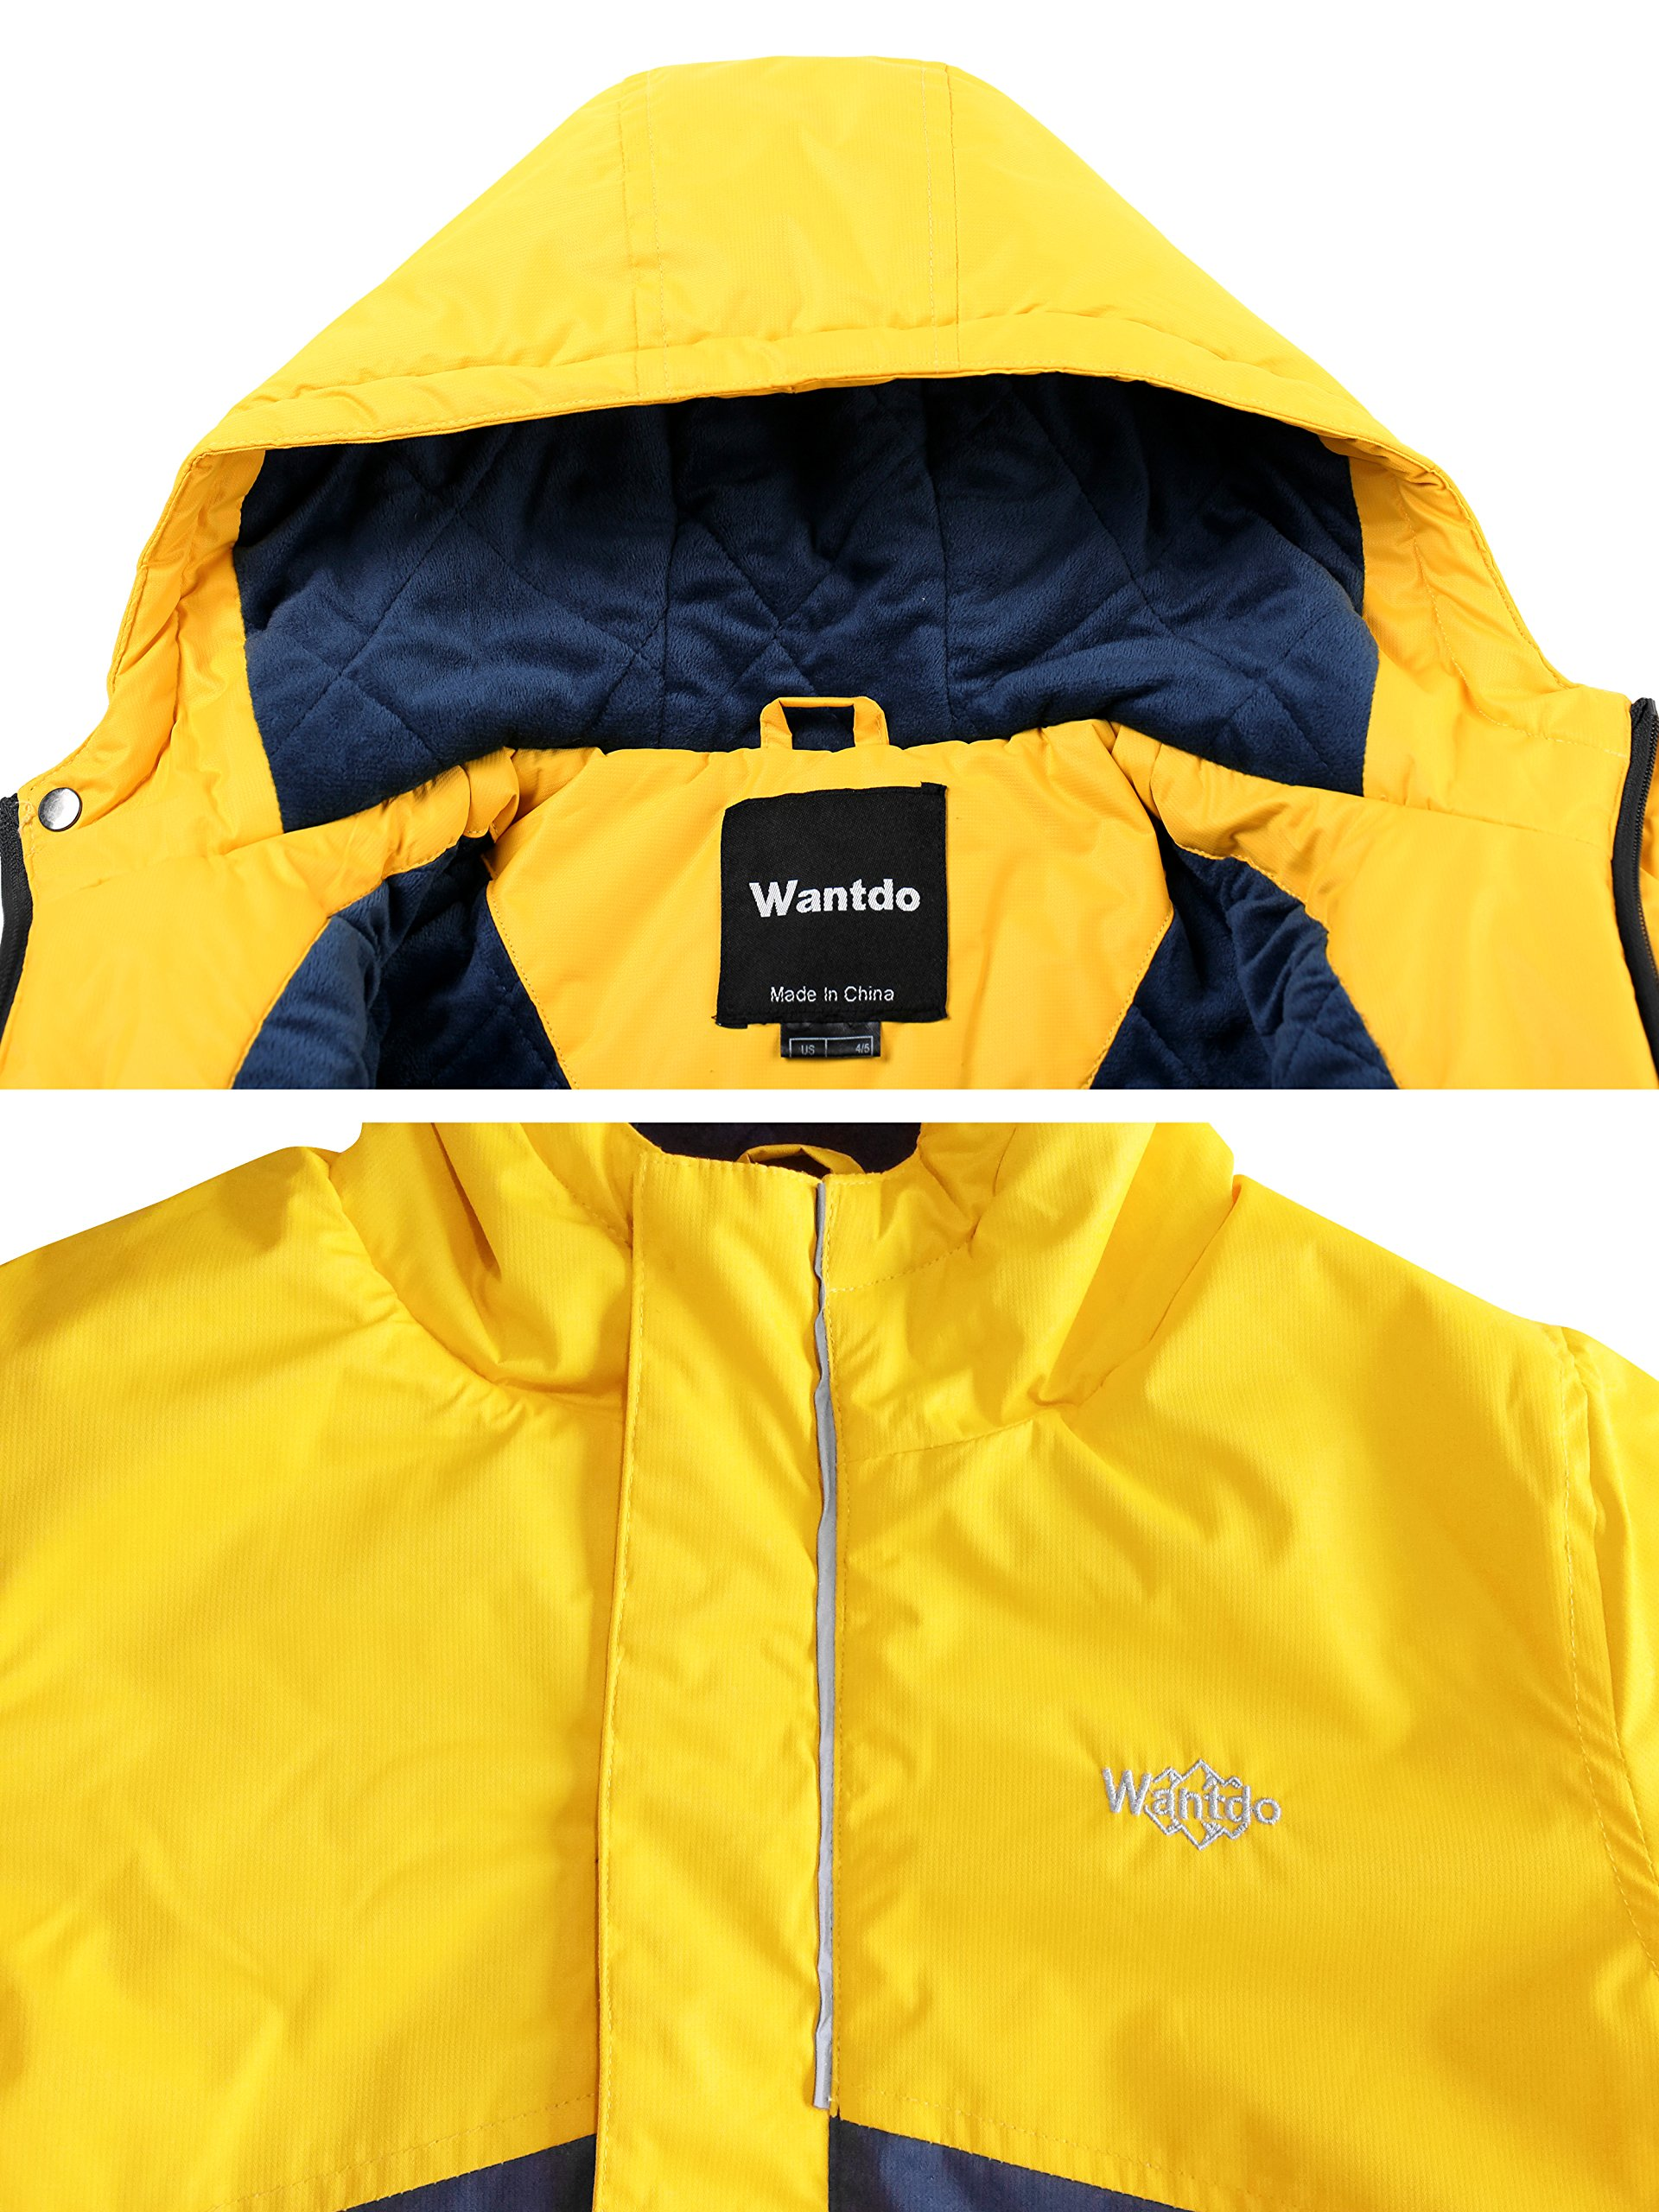 Wantdo Boy's Waterproof Quilted Ski Jacket Cotton Padded Coat Hooded Rainwear(Yellow+Dark Blue, 6/7) by Wantdo (Image #4)